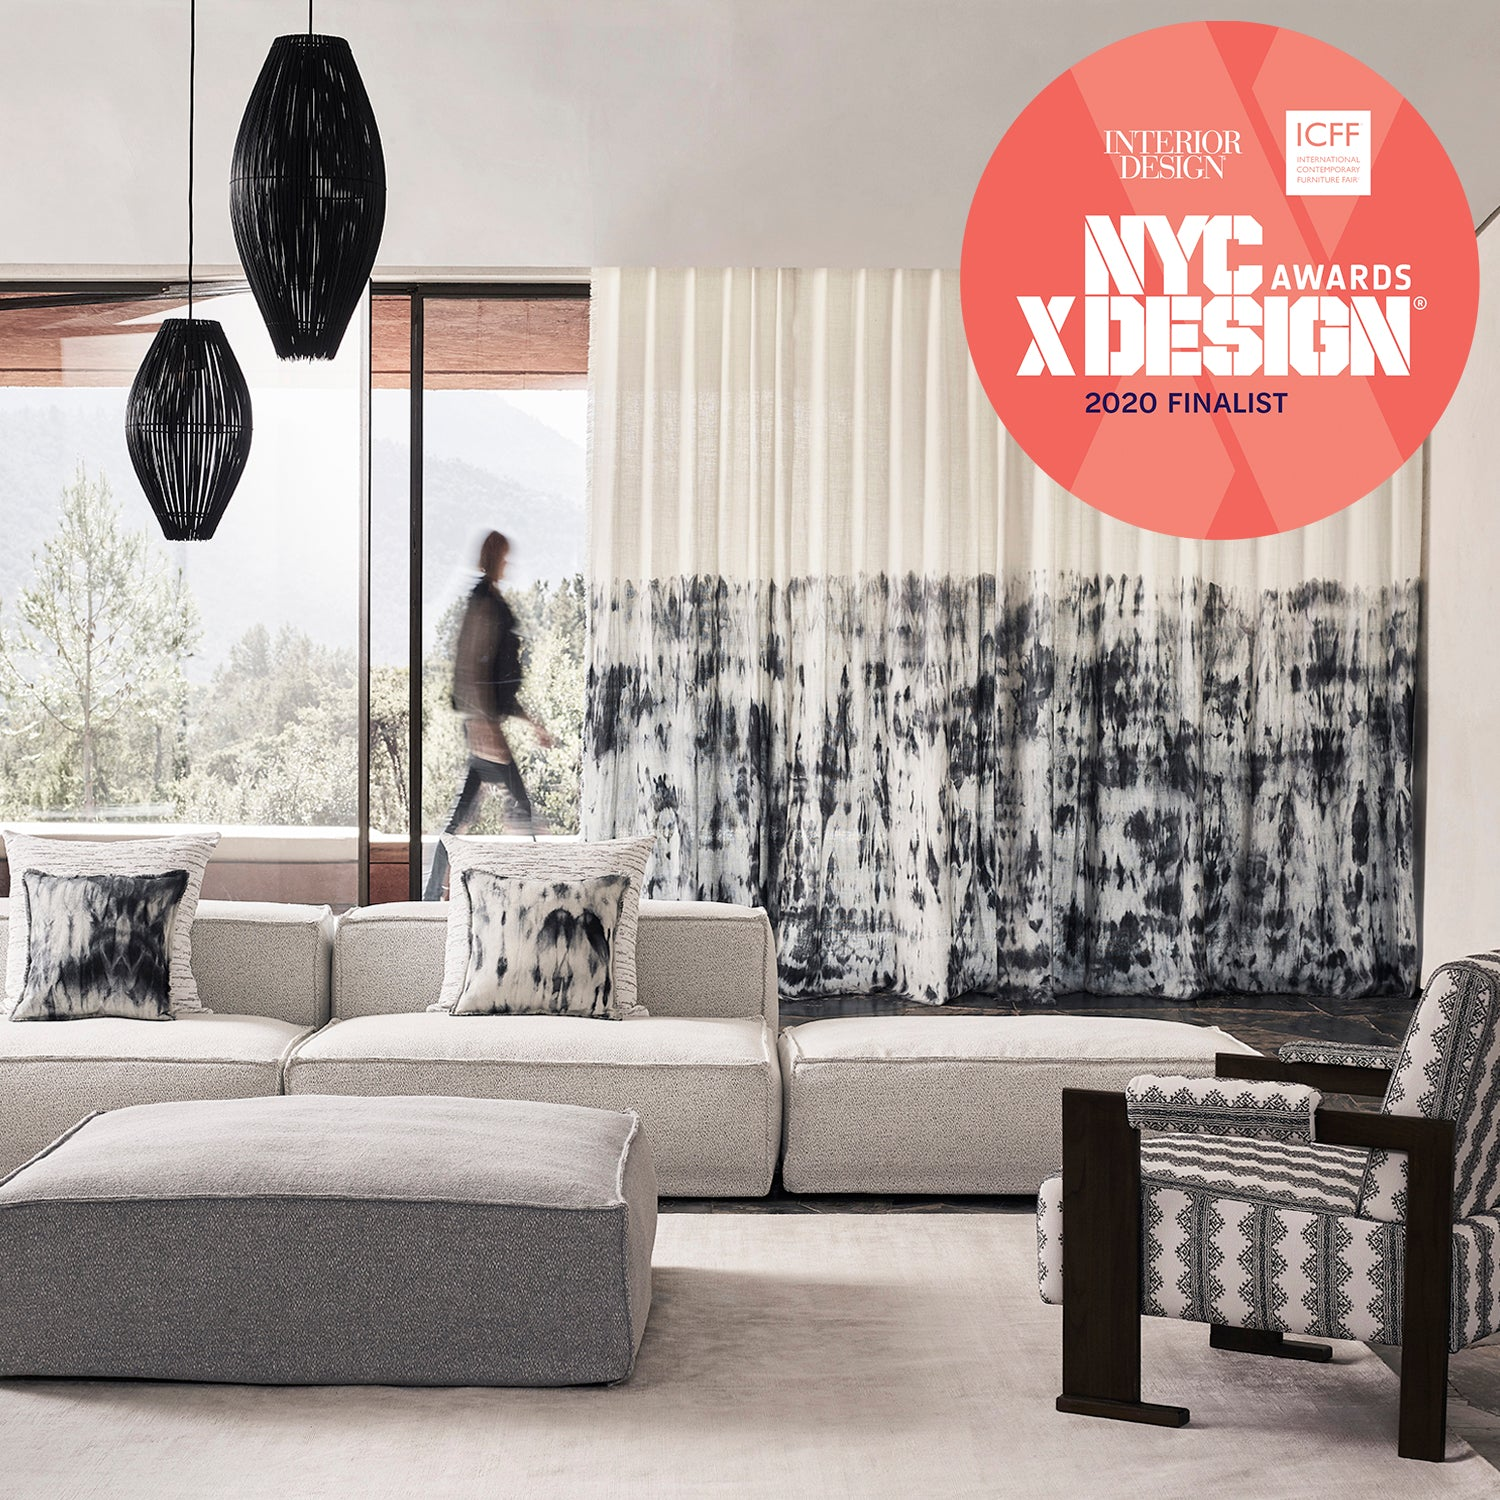 Watercolor Fabric - NYCxDesign Awards Finalist